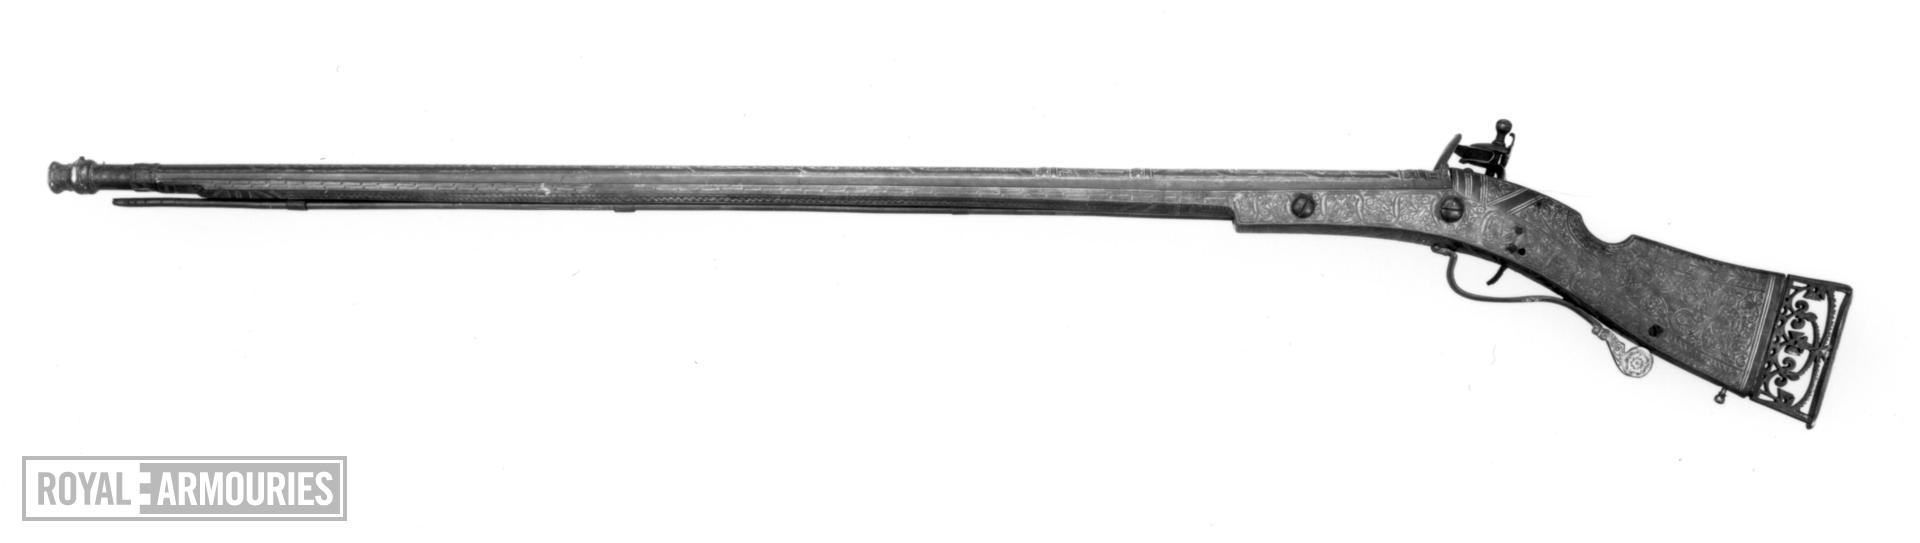 Flintlock muzzle-loading sporting gun - by James Low Probably made for Charles I, as Prince of Wales.